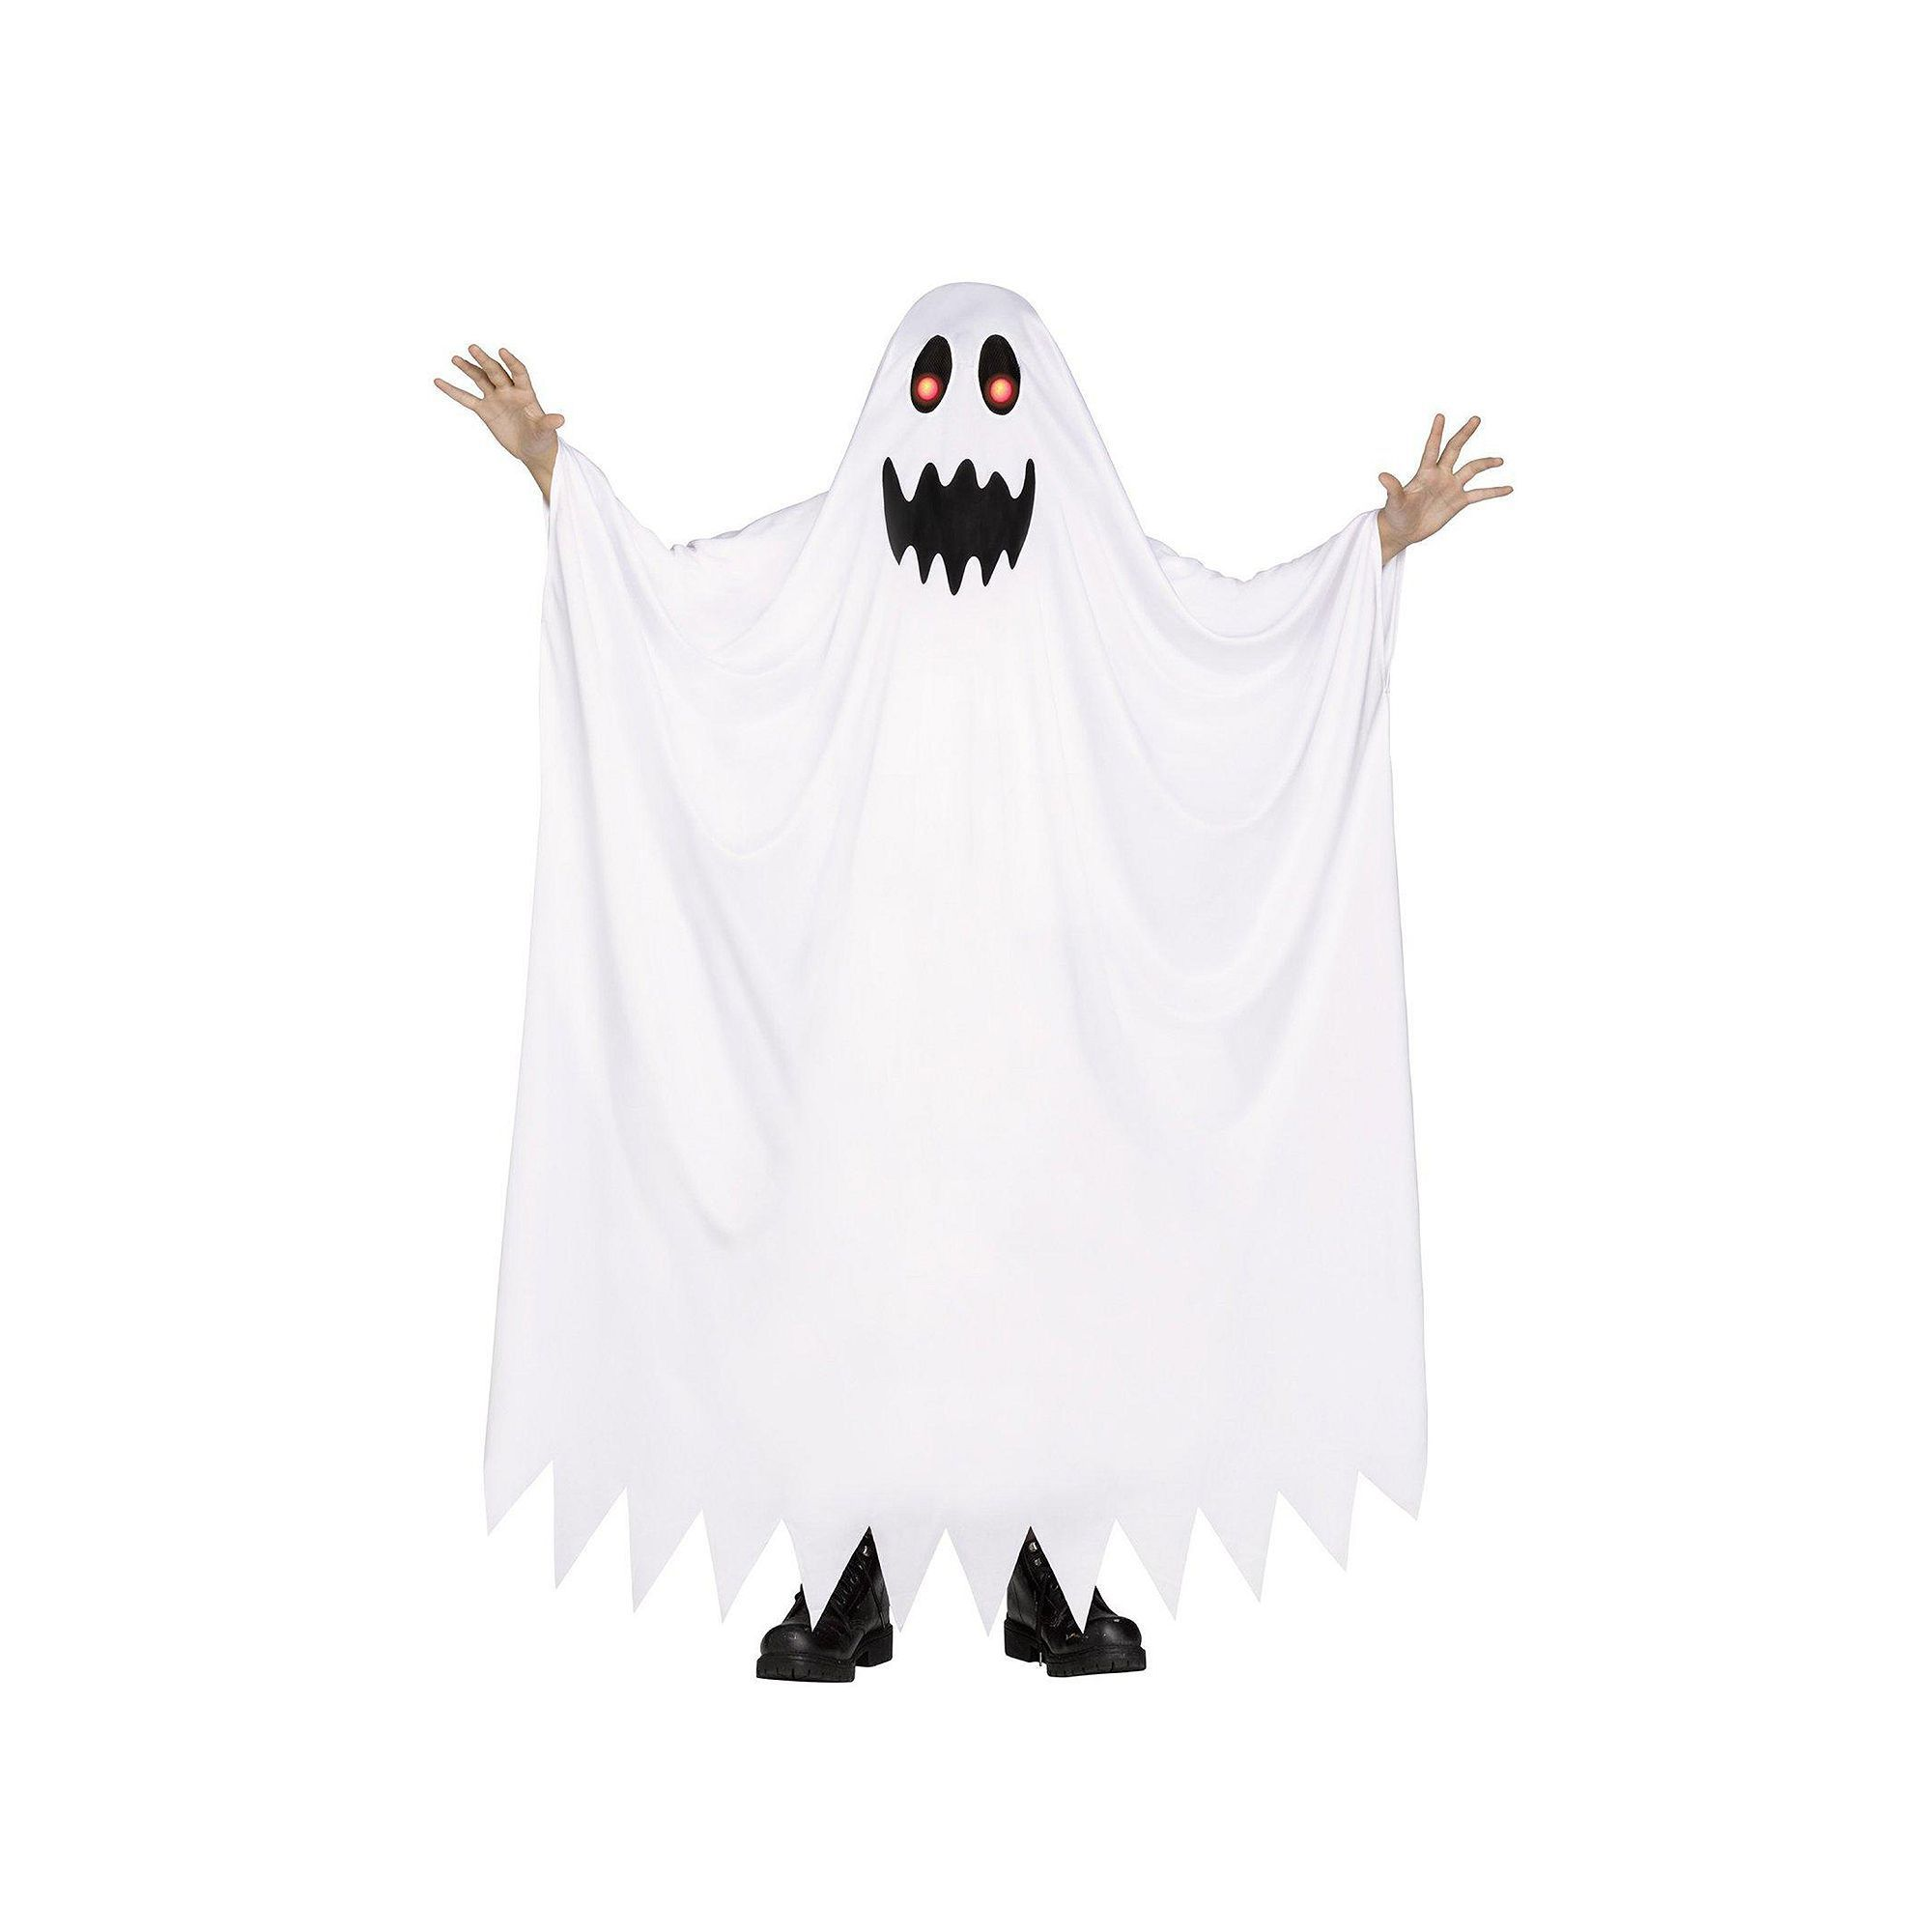 light-up ghost costume - kids, multicolor | products | pinterest